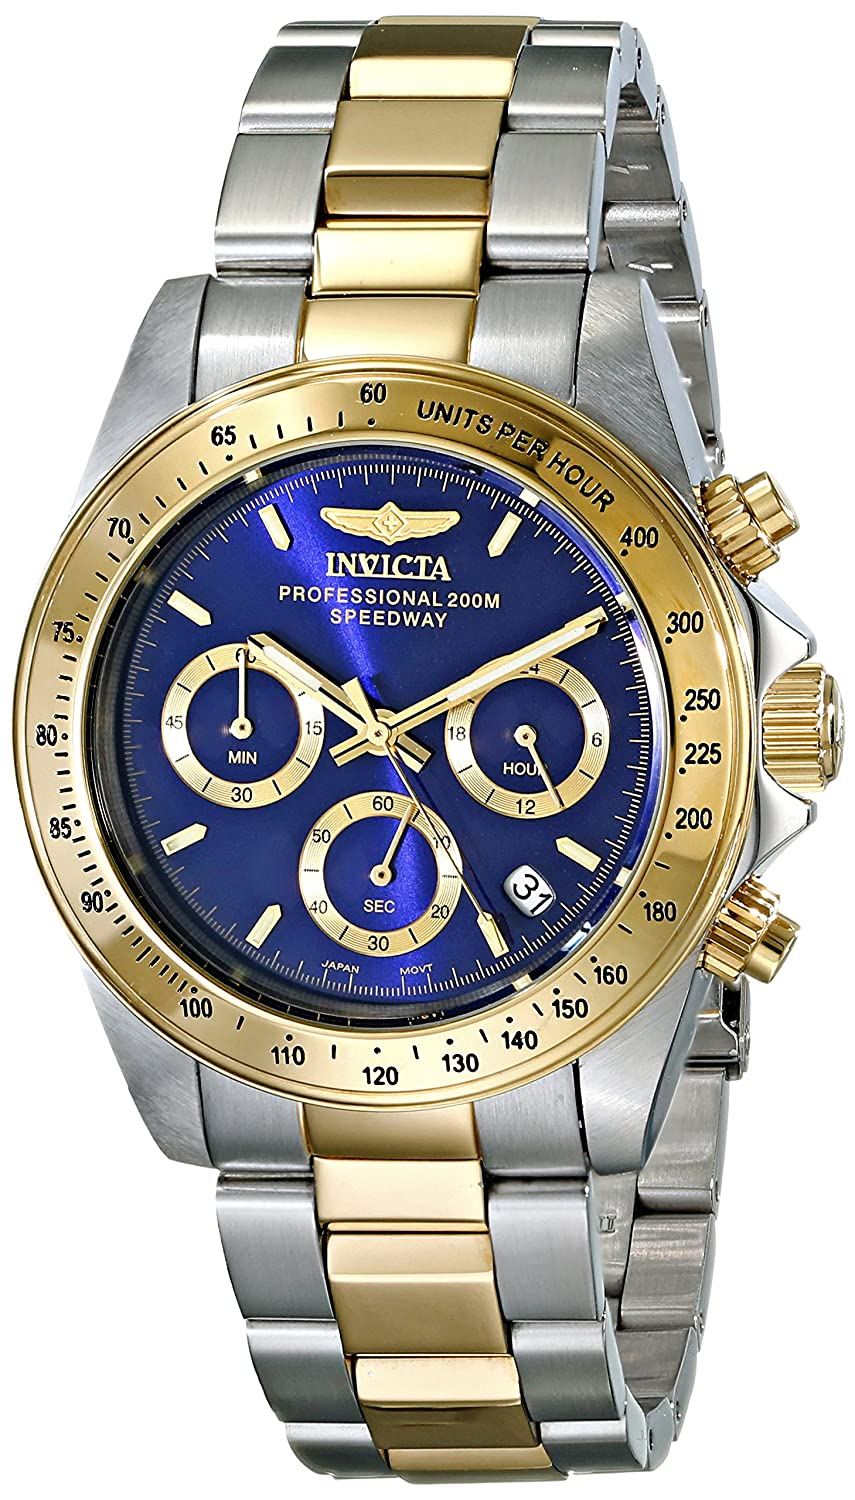 Invicta Men's 3644 Speedway Quartz Watch With Blue Dial Chronograph Display And Gold Stainless Steel Bracelet by